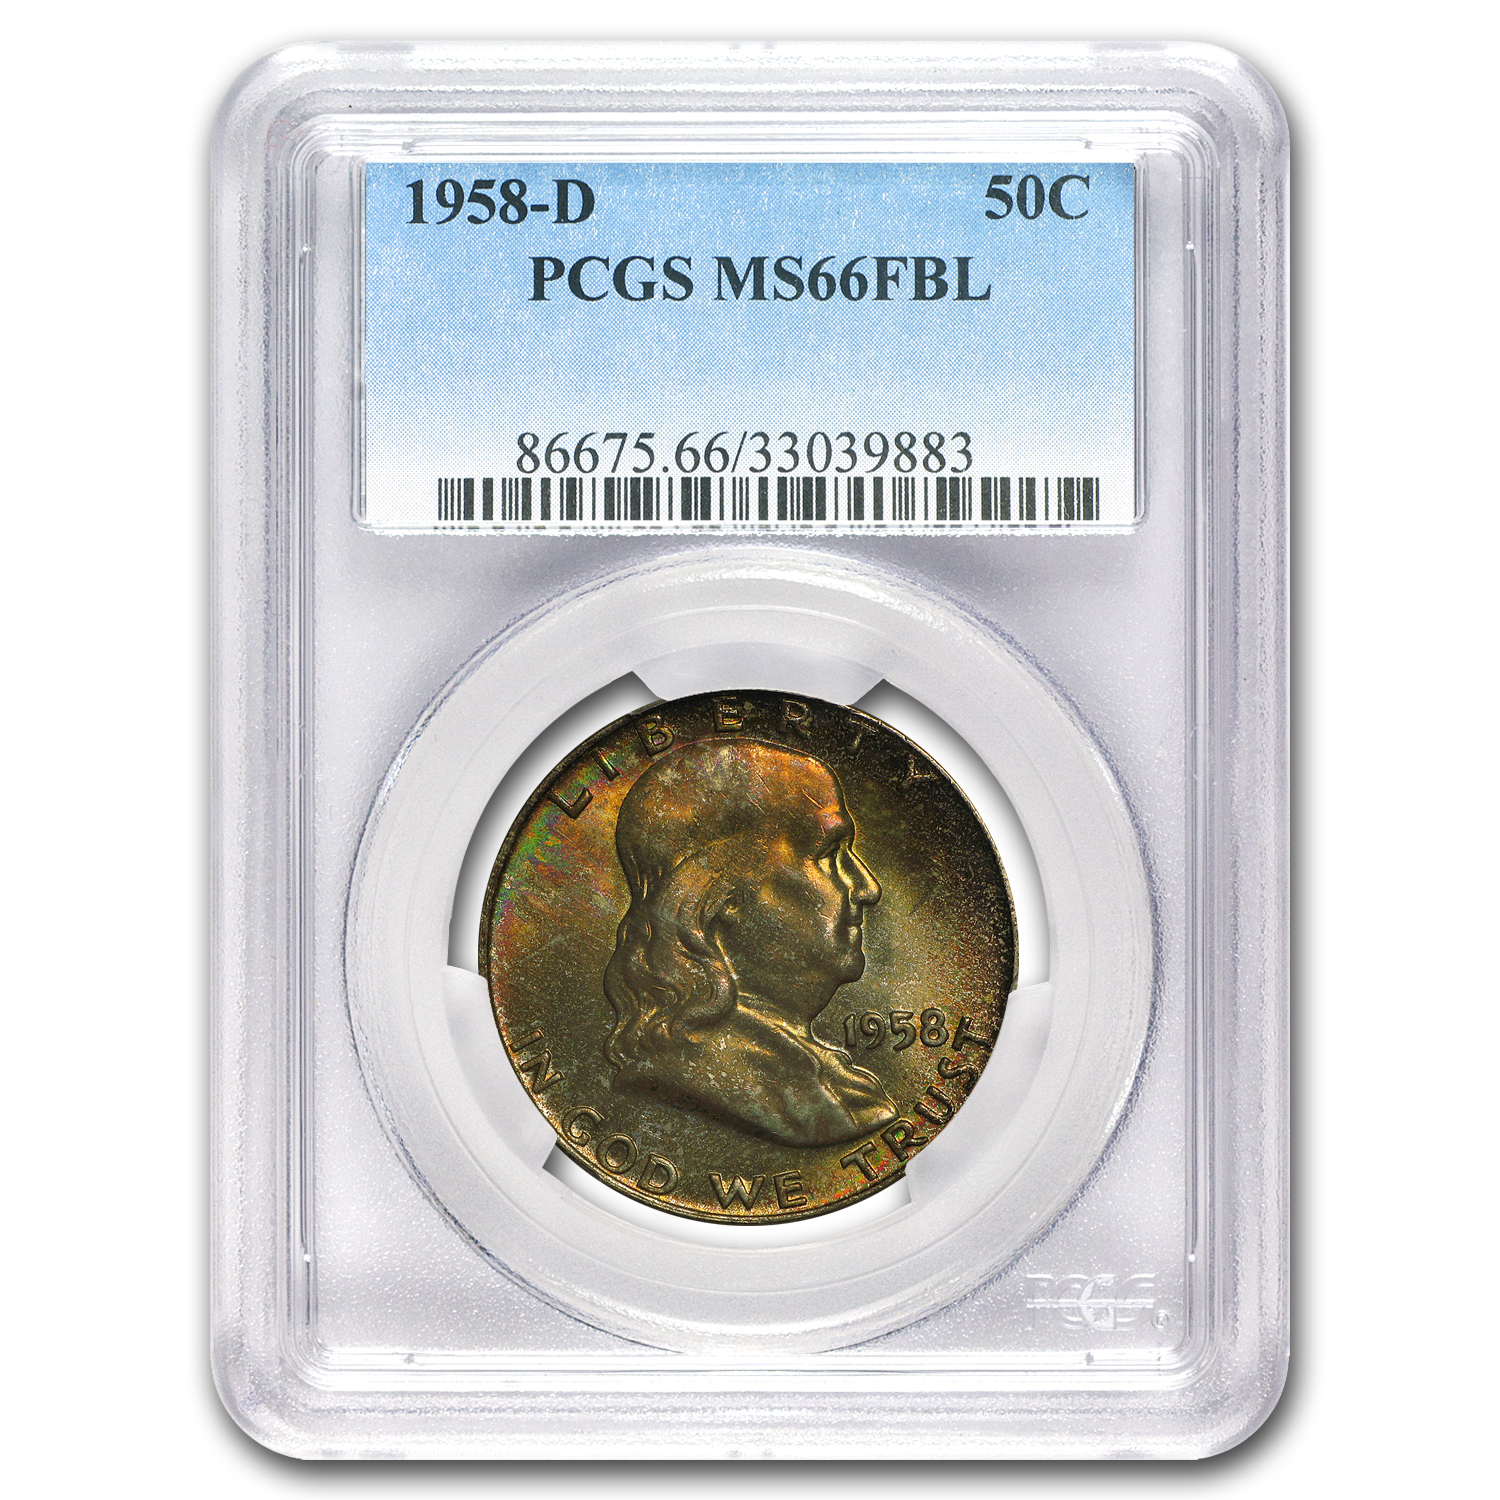 1958-D Franklin Half Dollar MS-66 PCGS (FBL, Toned)